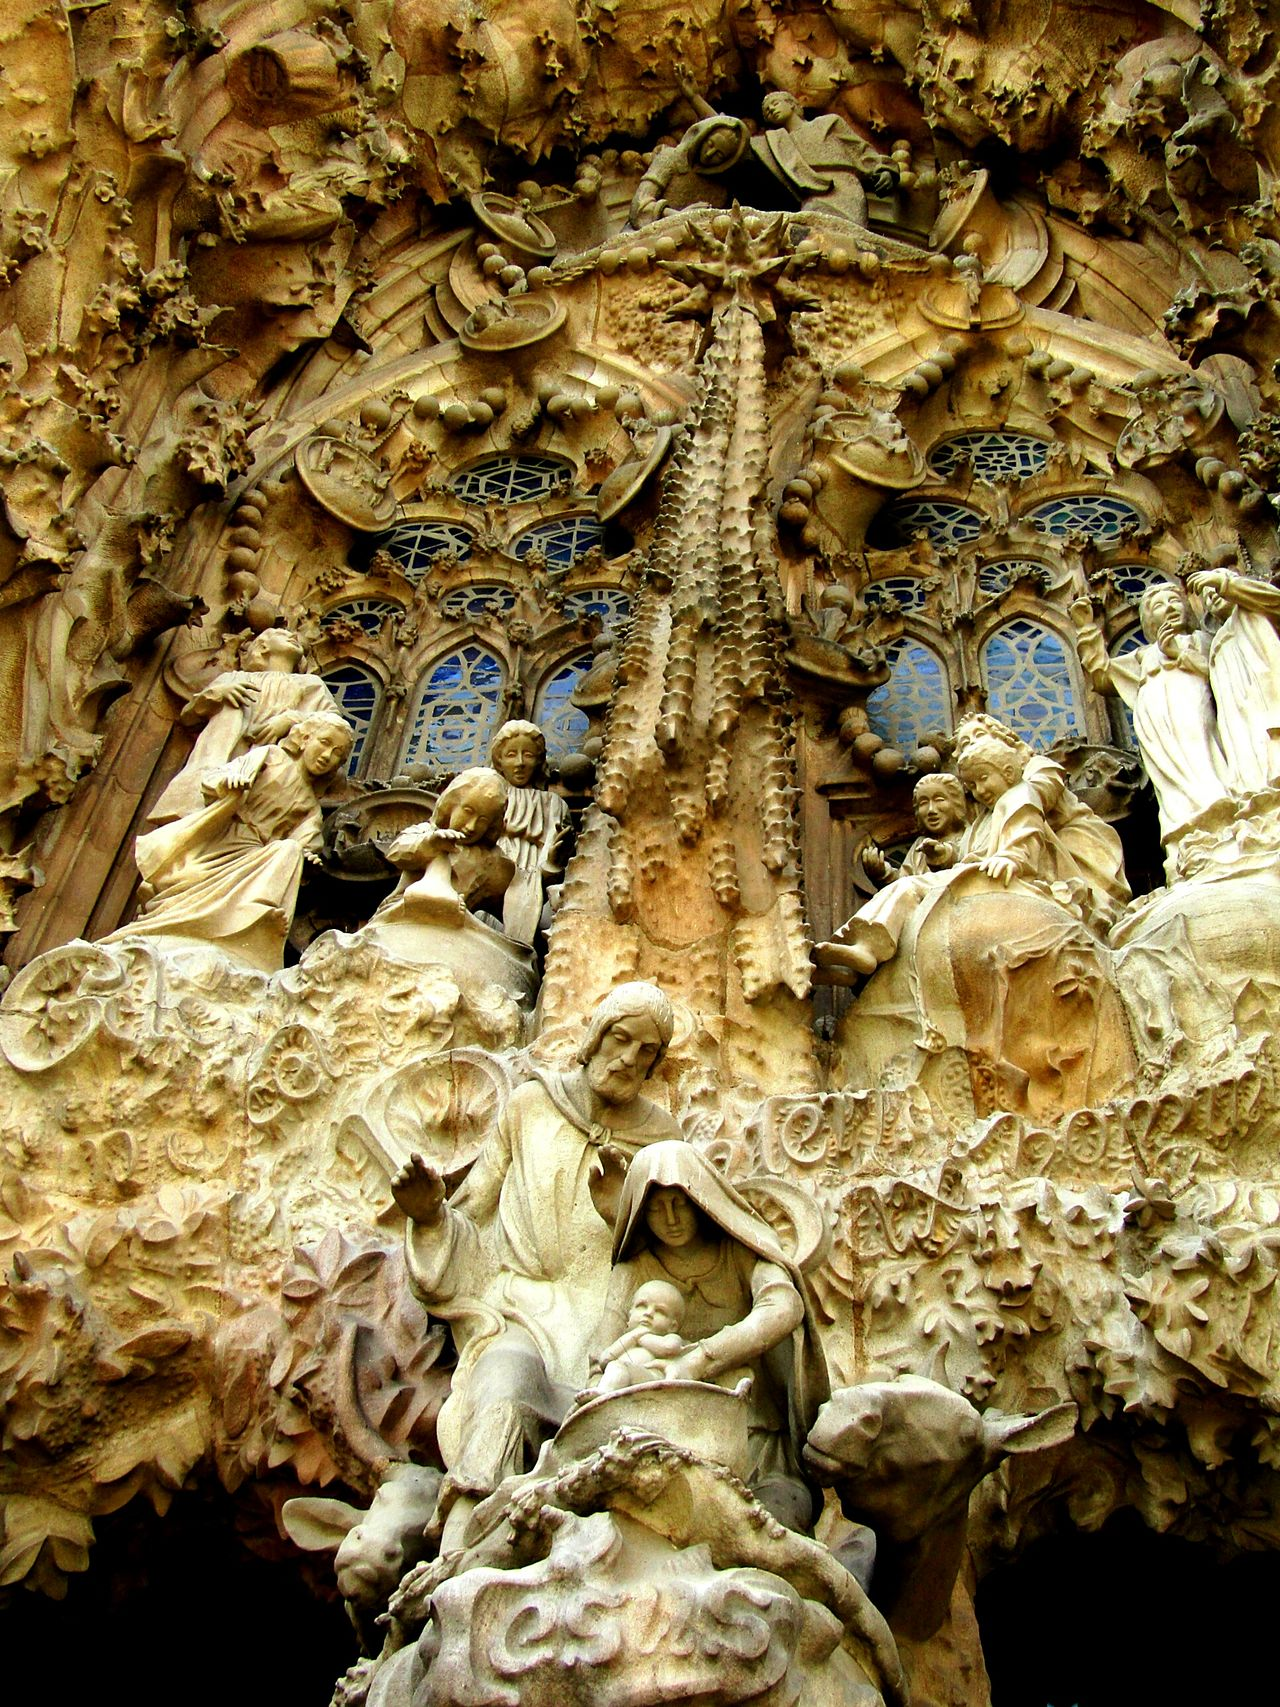 Check This Out Statue Monument Details Jesus From My Point Of View Barcelona Gaudi Sagradafamilia Sagradafamiliabarcelona Sagradafamiliachurch Eyeemcollection Eyeemphotography SagradadeFamilia Architecturephotography Buildingphotography Amazingview Beautifulbuilding Oldbuilding Todayphotography Writing On The Walls